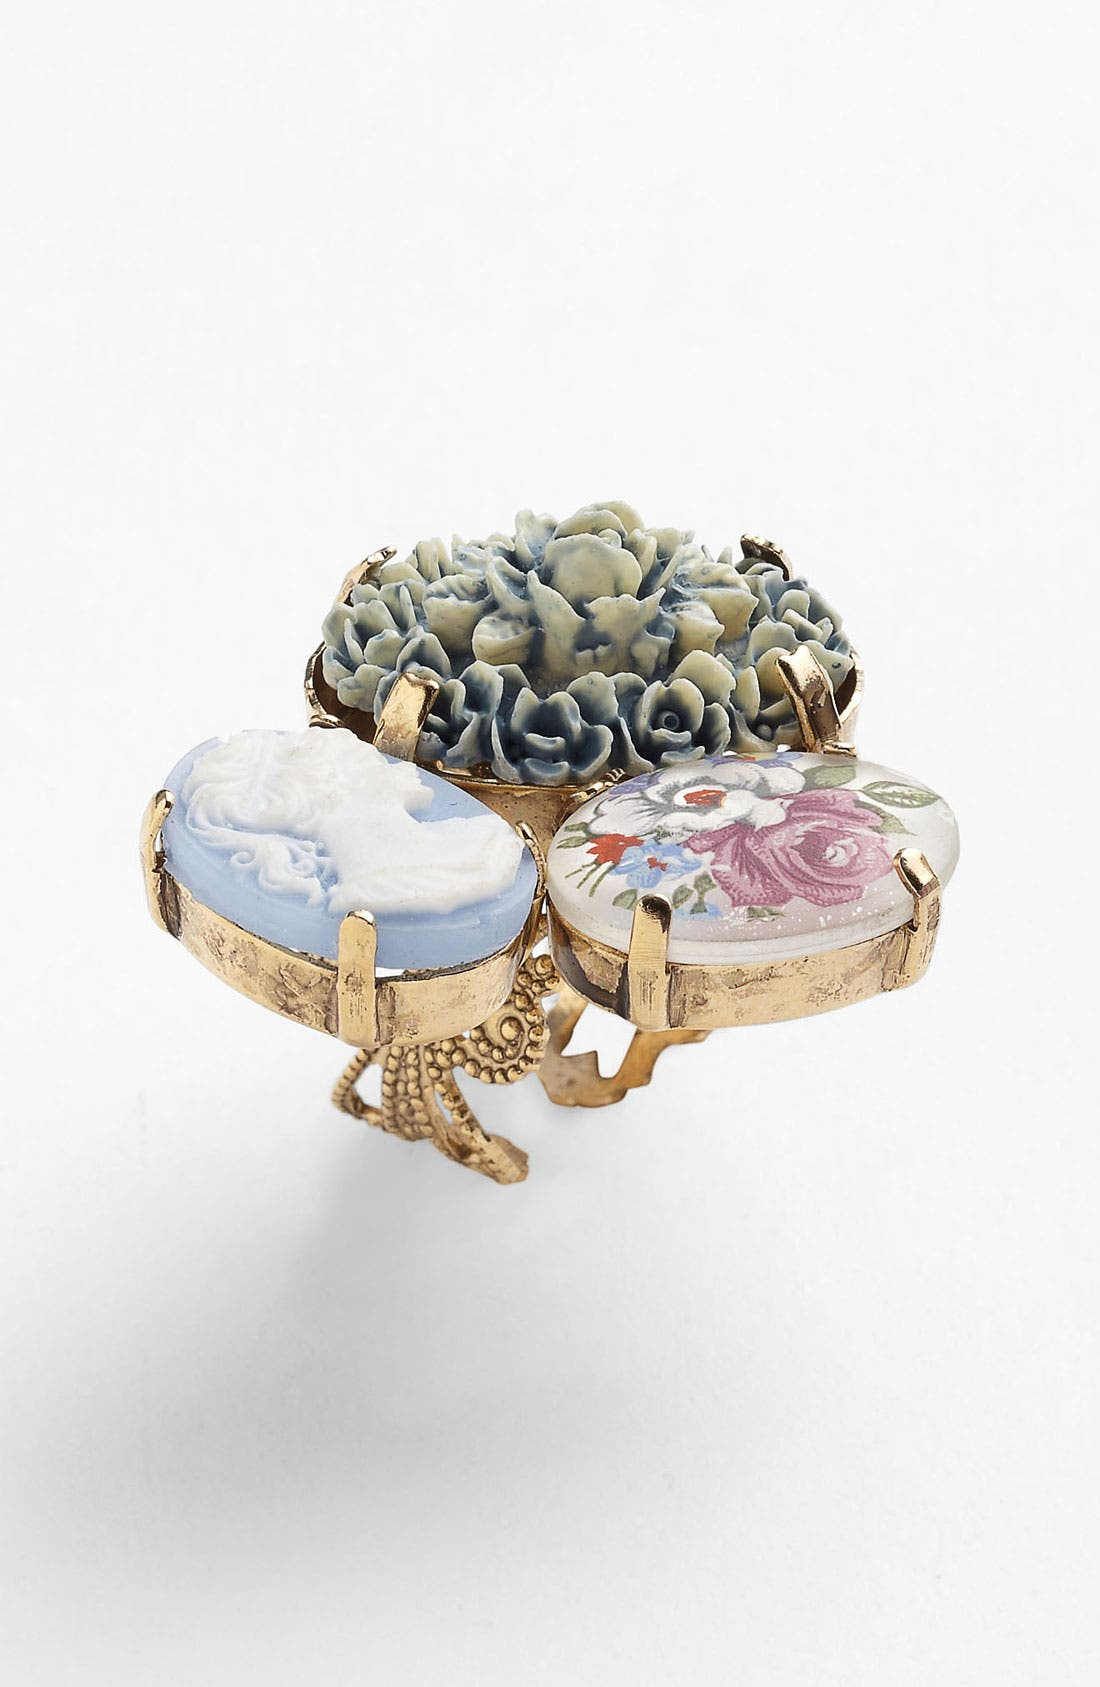 Alternate Image 1 Selected - Bonnie Jonas Floral Cameo Ring